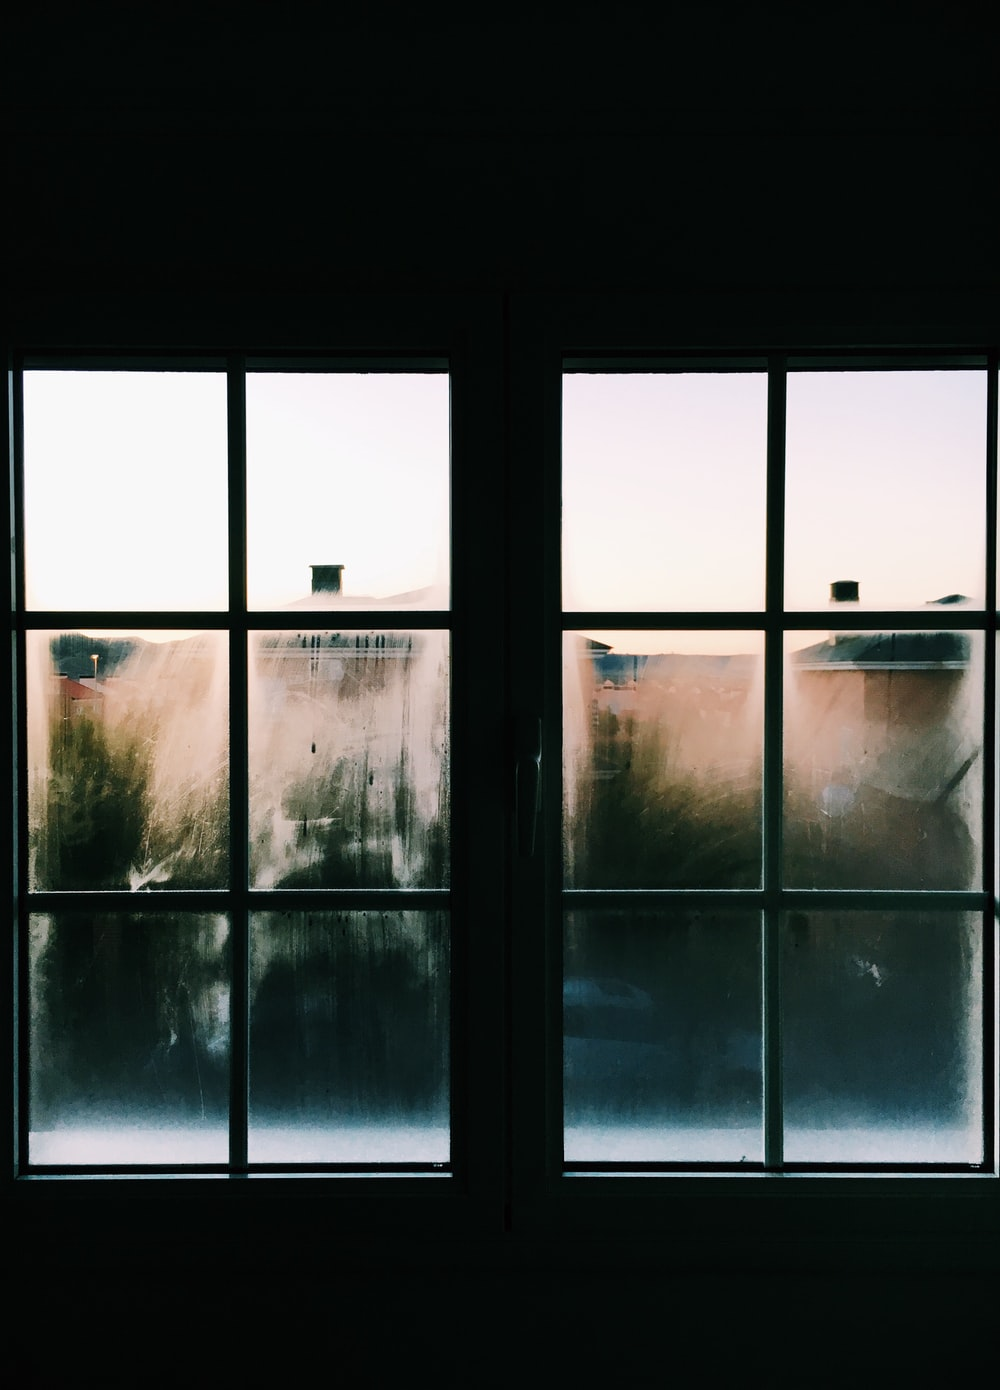 window pane pictures hd download free images on unsplash